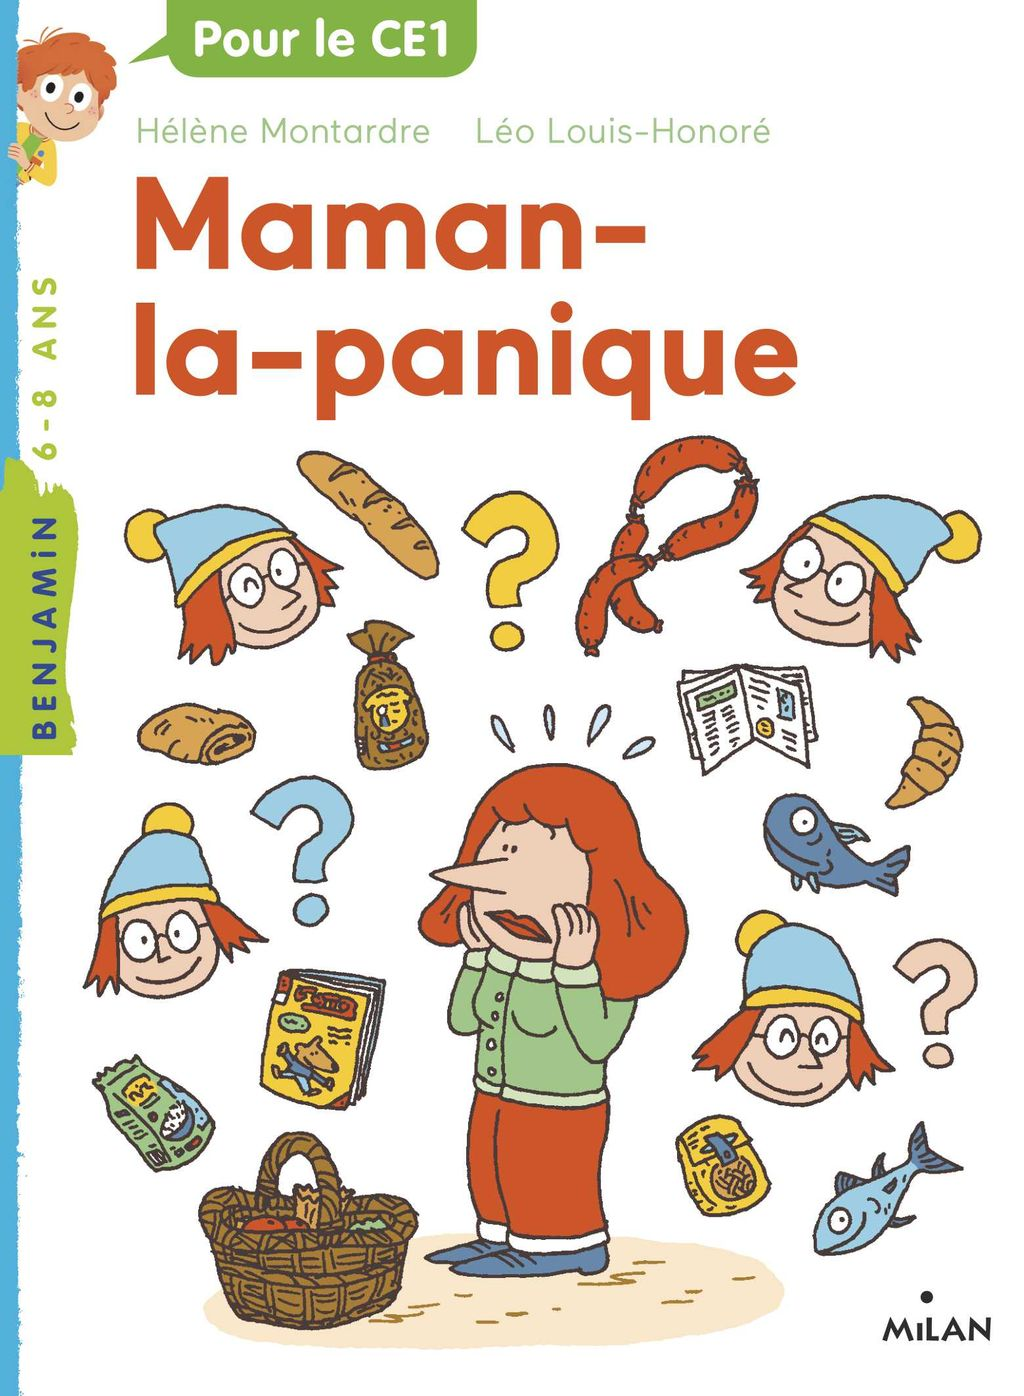 « Maman la panique » cover